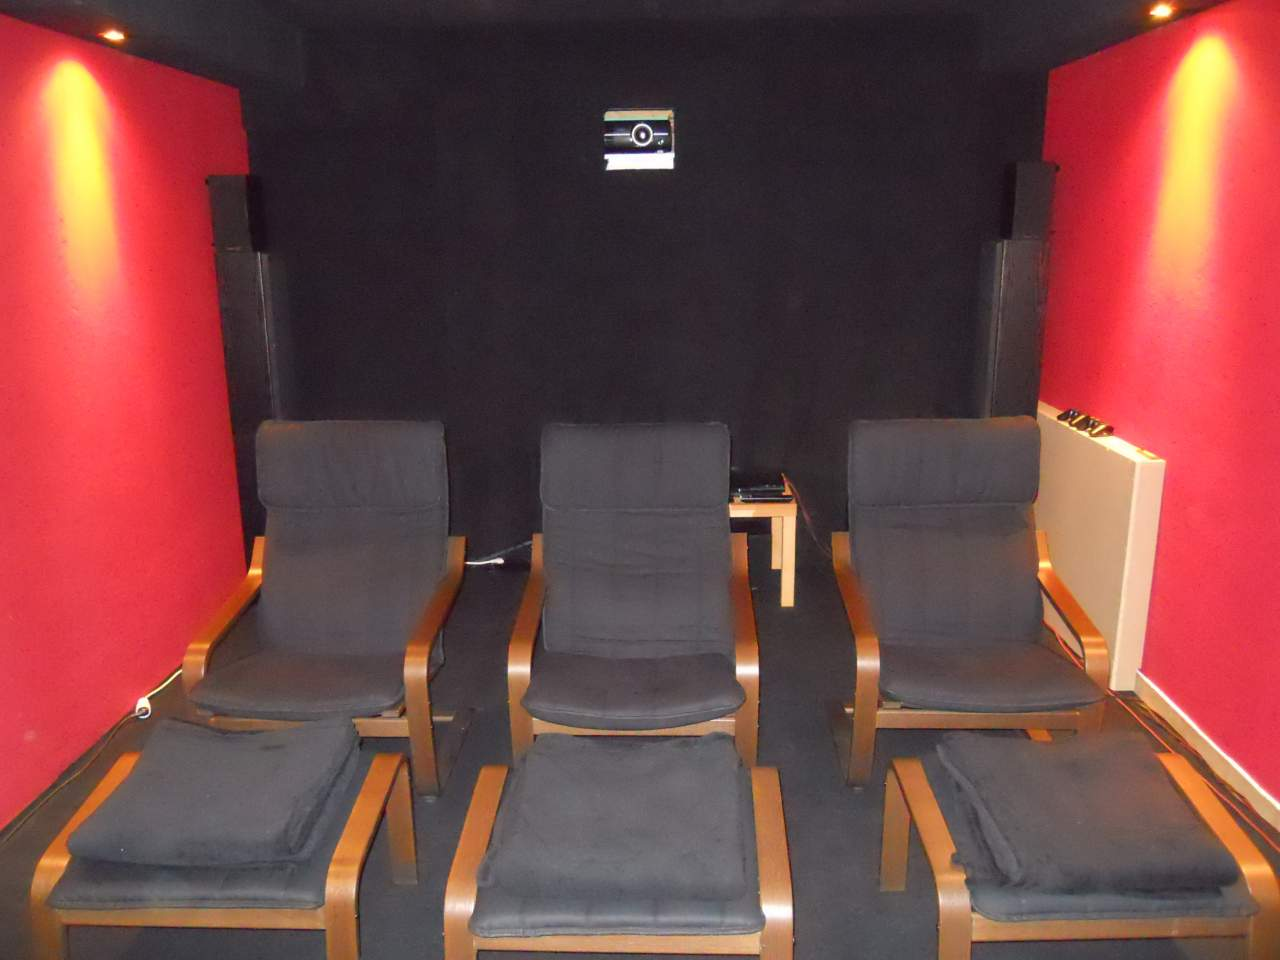 vorstellung neues heimkino un poison nukes forum. Black Bedroom Furniture Sets. Home Design Ideas